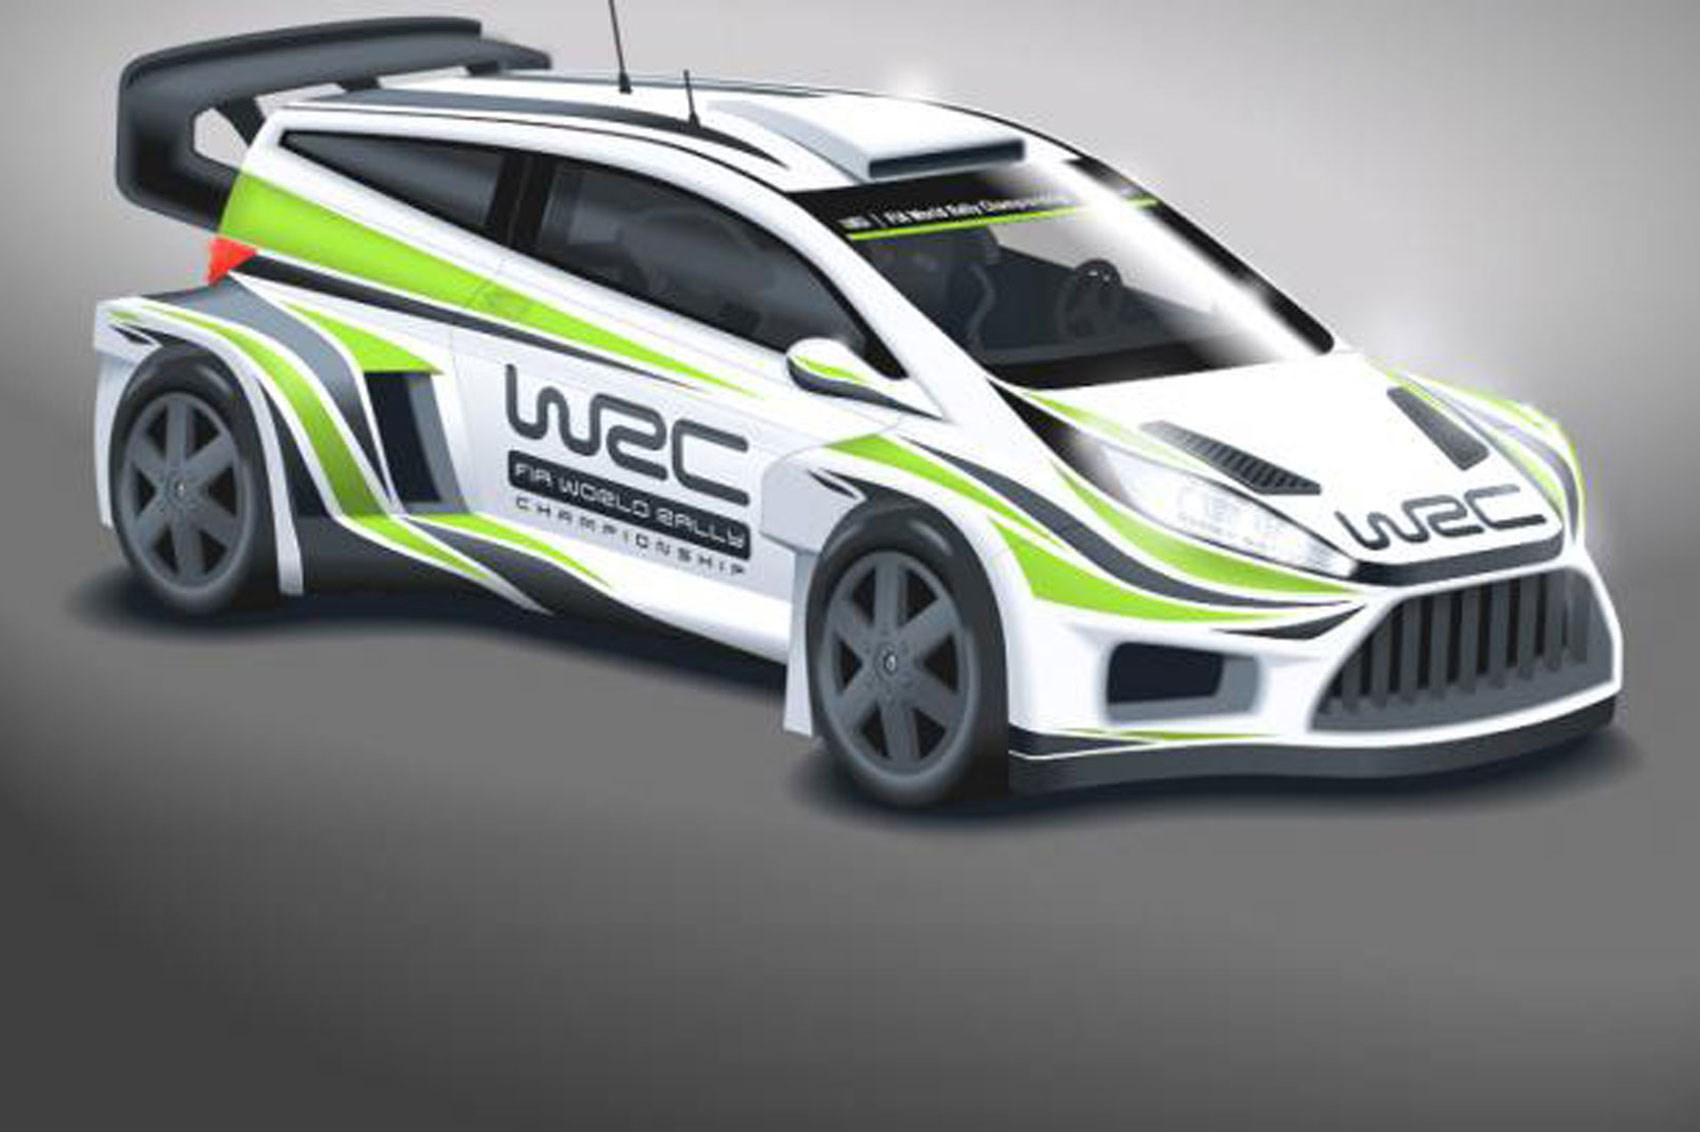 Ultrablogus  Remarkable Wild New Look For Wrc Cars In  By Car Magazine With Exquisite Wrc Cars Will Get Wider Bodies Bigger Wings And More Power For  With Amazing  Chevy Cruze Interior Also Audi A  Interior In Addition  Impala Ss Interior And  Cuda Interior As Well As  Honda Civic Interior Additionally  Bmw I Red Interior From Carmagazinecouk With Ultrablogus  Exquisite Wild New Look For Wrc Cars In  By Car Magazine With Amazing Wrc Cars Will Get Wider Bodies Bigger Wings And More Power For  And Remarkable  Chevy Cruze Interior Also Audi A  Interior In Addition  Impala Ss Interior From Carmagazinecouk